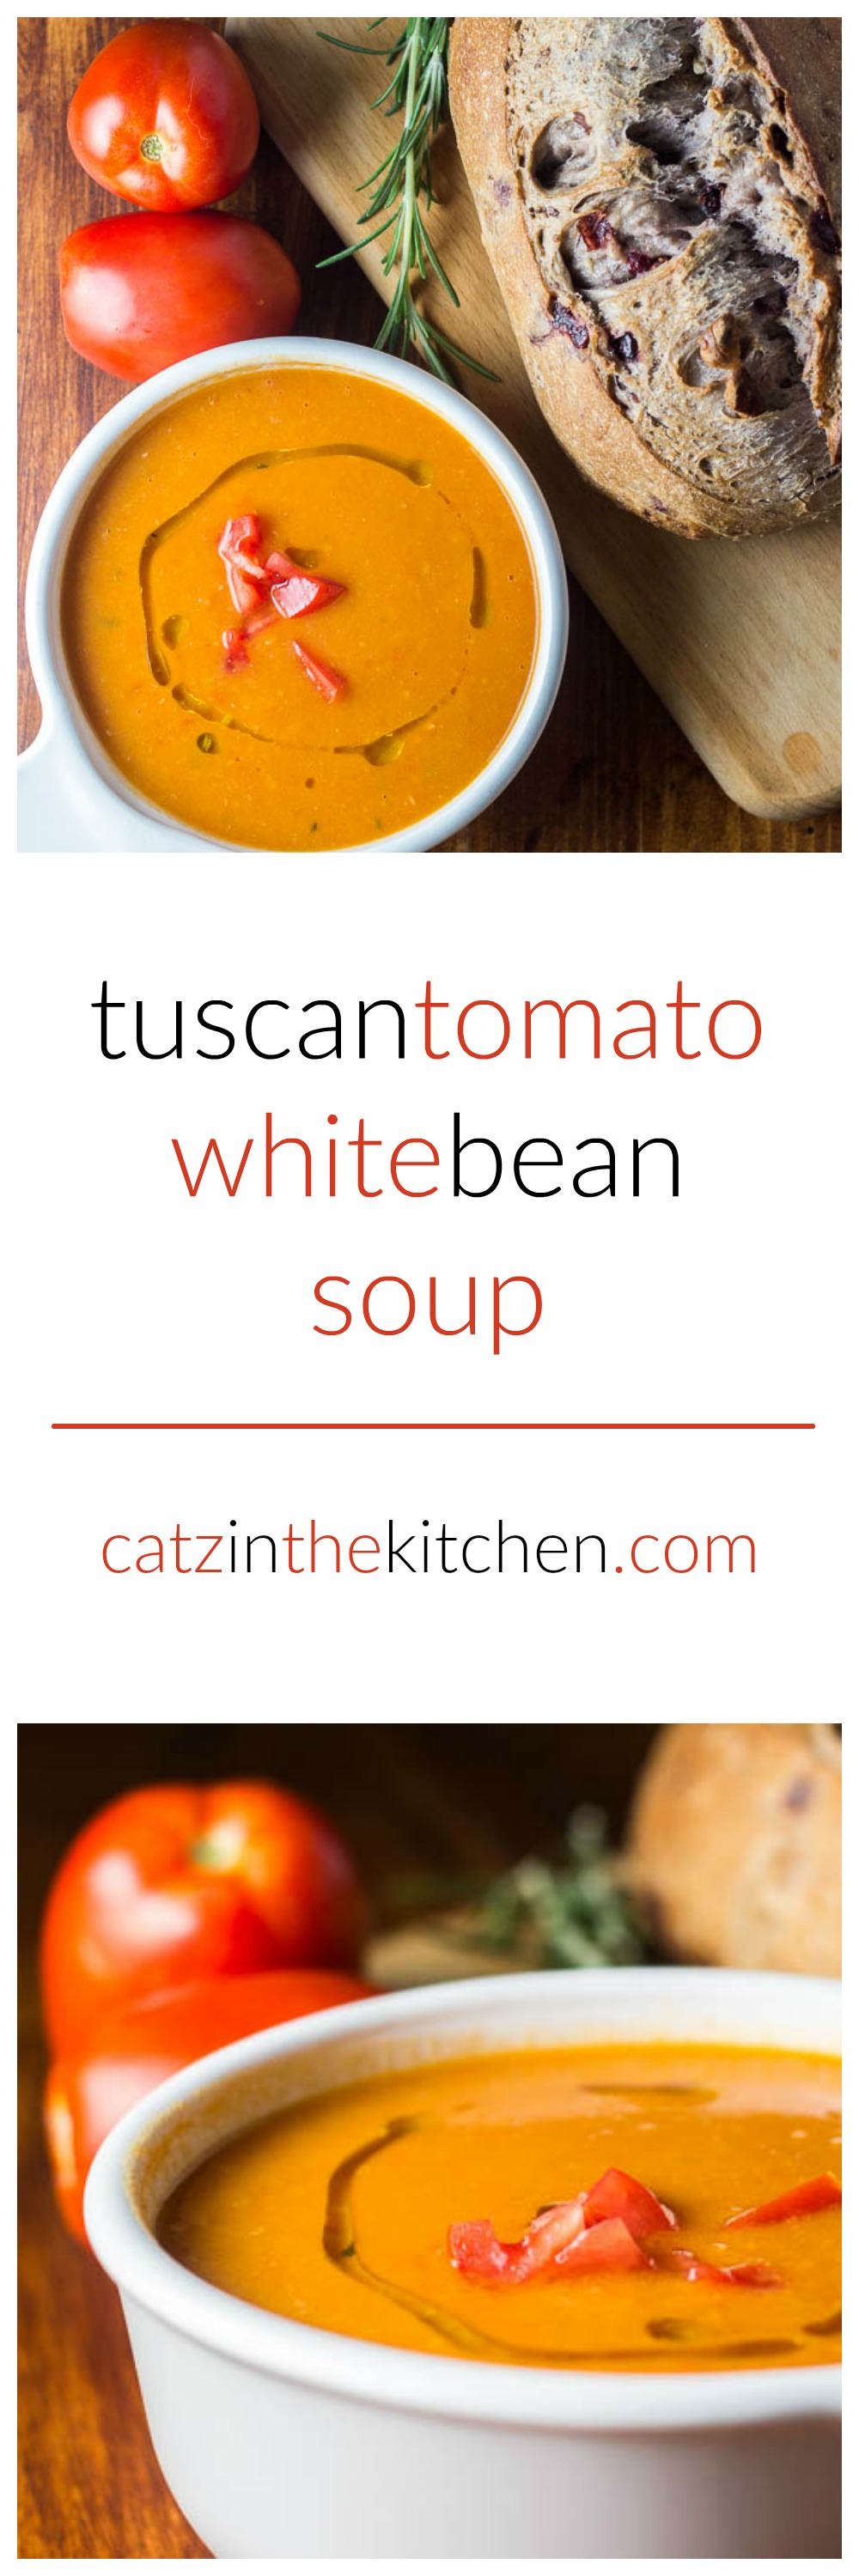 Tuscan Tomato White Bean Soup | Catz in the Kitchen | catzinthekitchen.com | #tomato #tuscan #soup